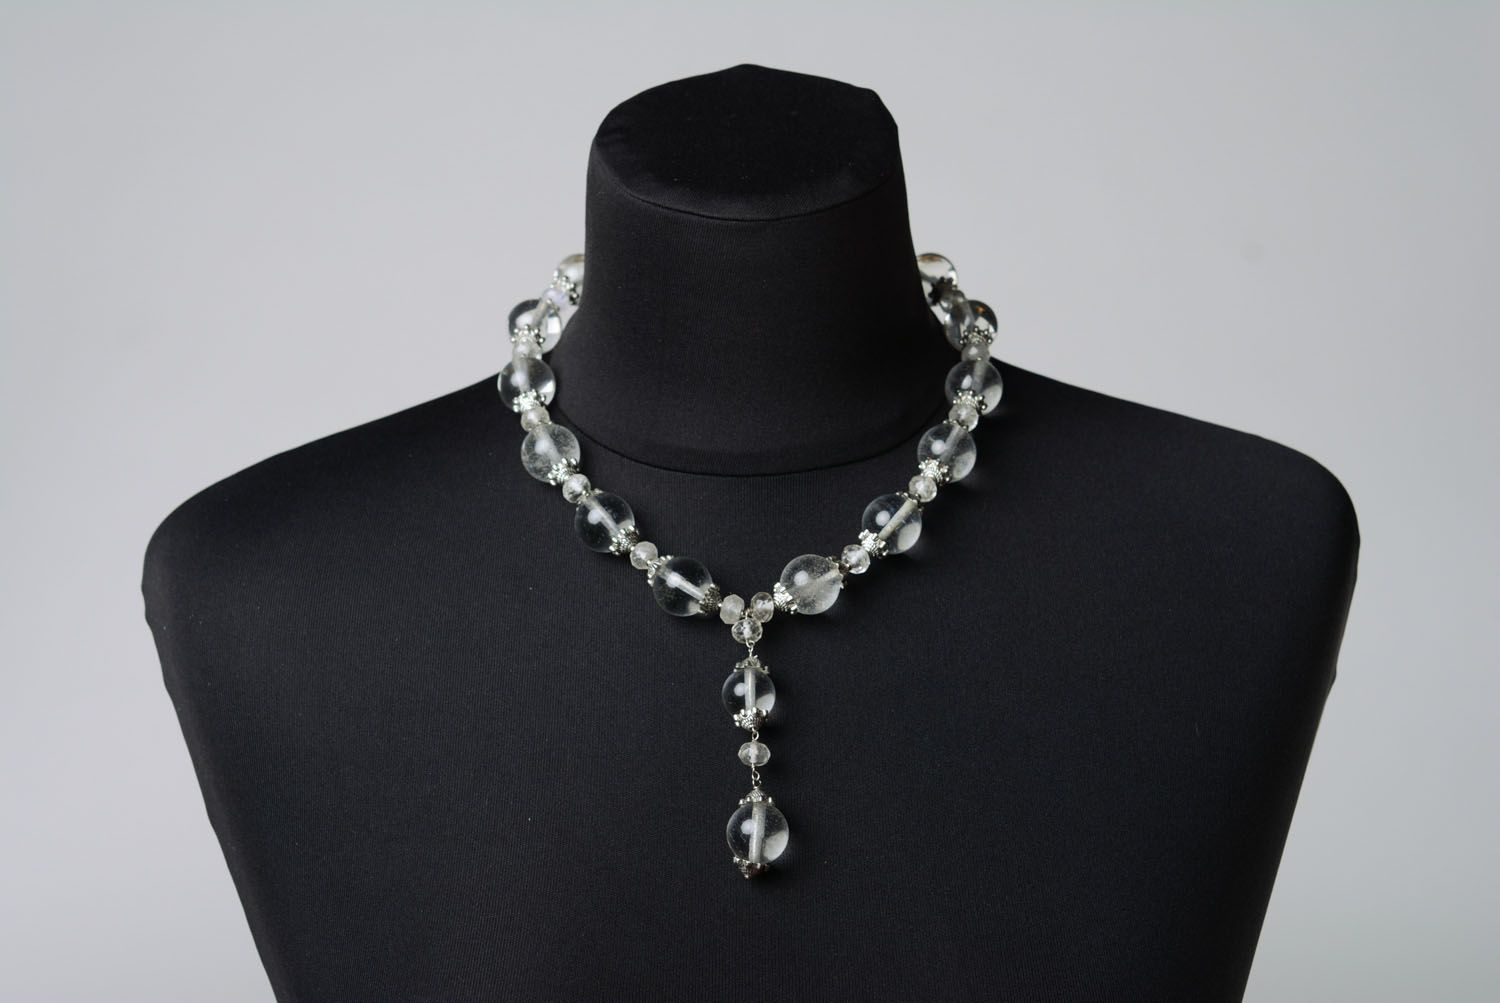 Author's necklace made of rock crystal photo 2